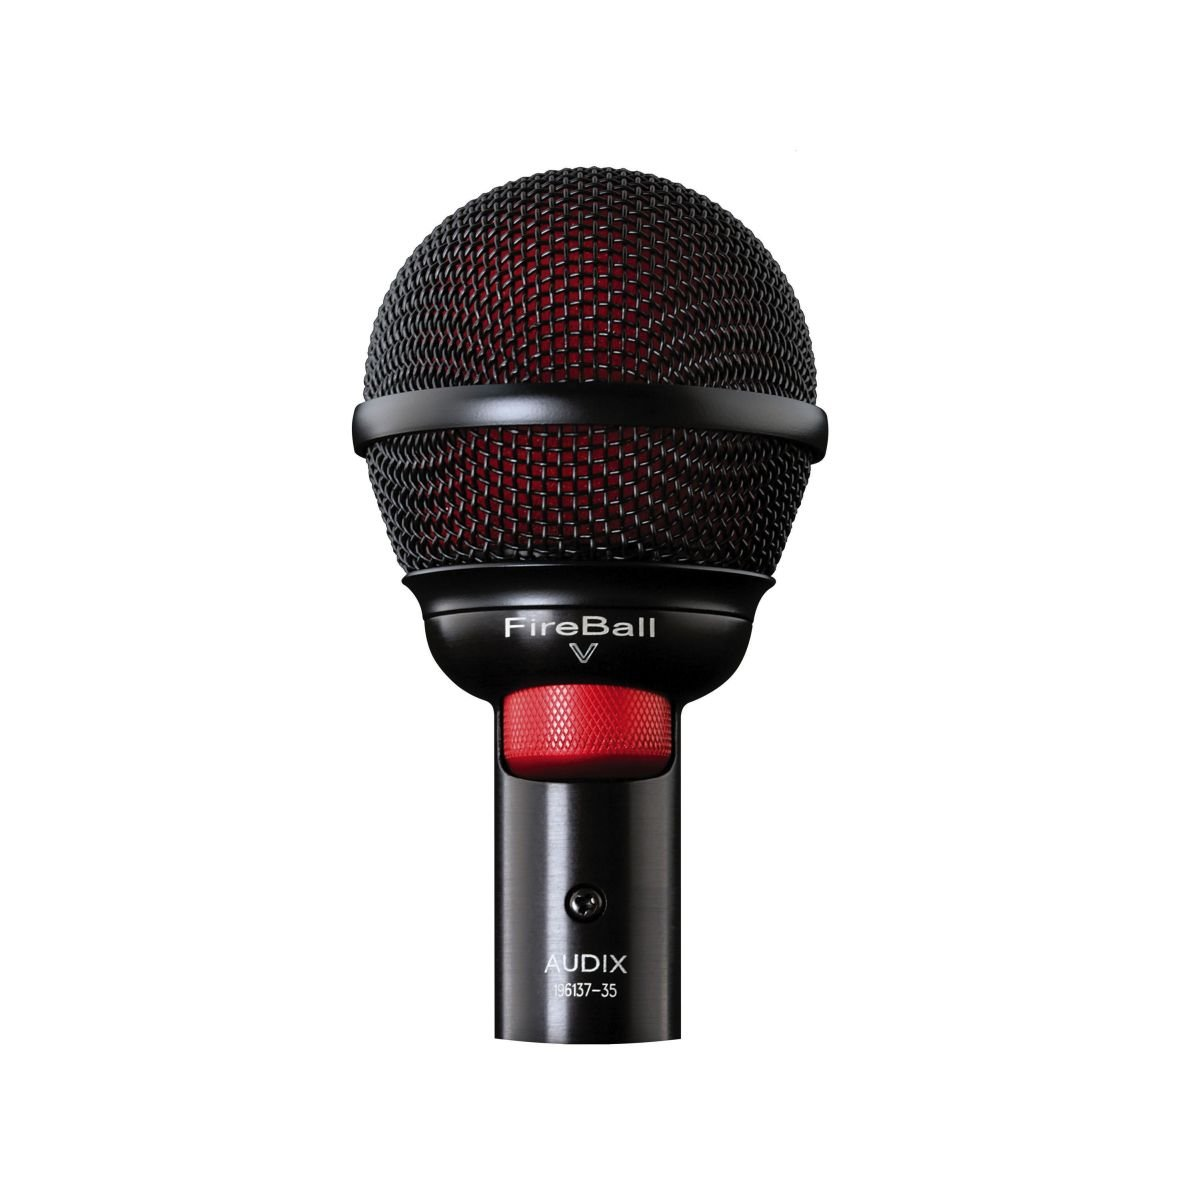 New Audix | High-Performance Professional Microphone for Harmonica and Beatbox, FIREBALL V with Cardioid Pickup Pattern and Dynamic Moving Coil Transducer